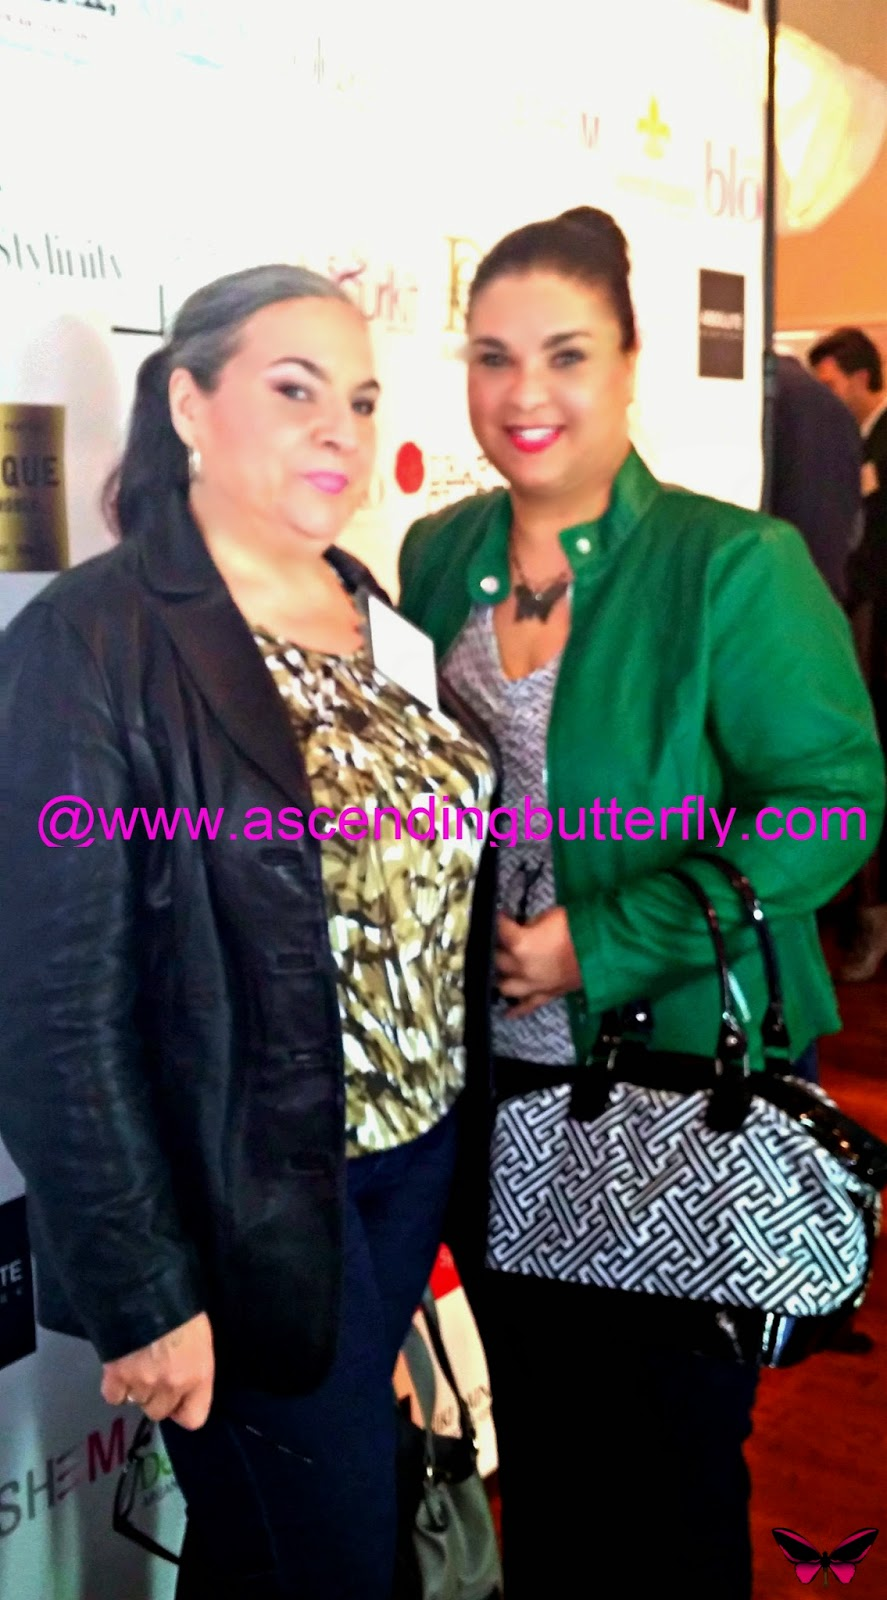 Ascending Butterfly attends BeautyPress Spotlight Day February 2014